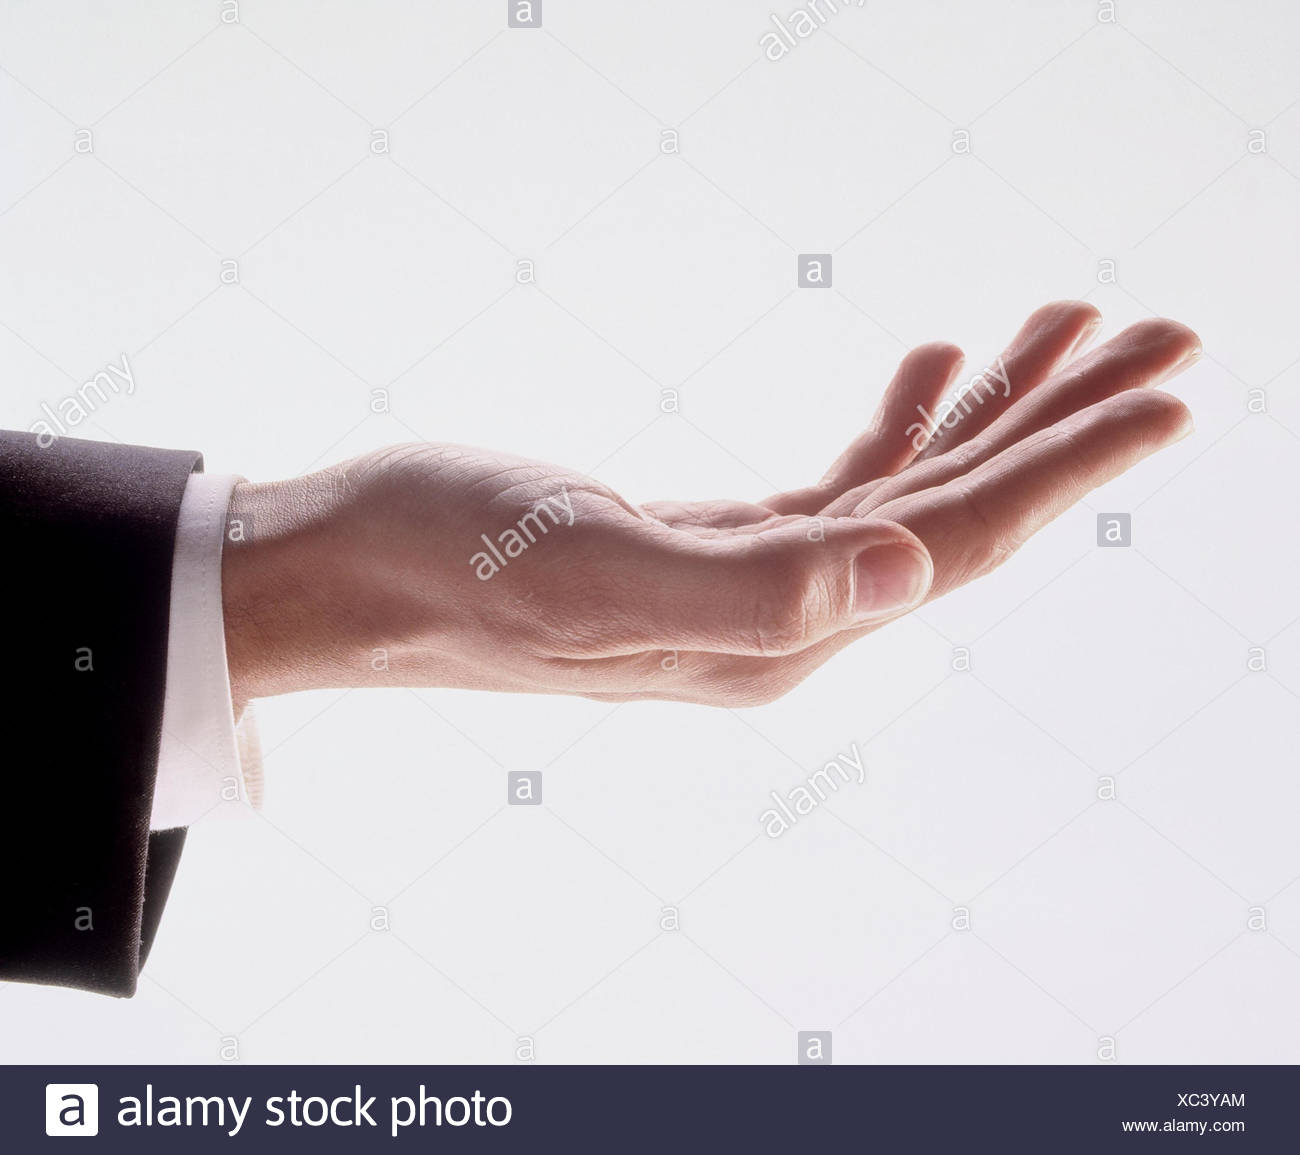 Man, detail, hand, detain, copy spaces, ask, take, contribution, preserved, request, request, donation, donation request - Stock Image